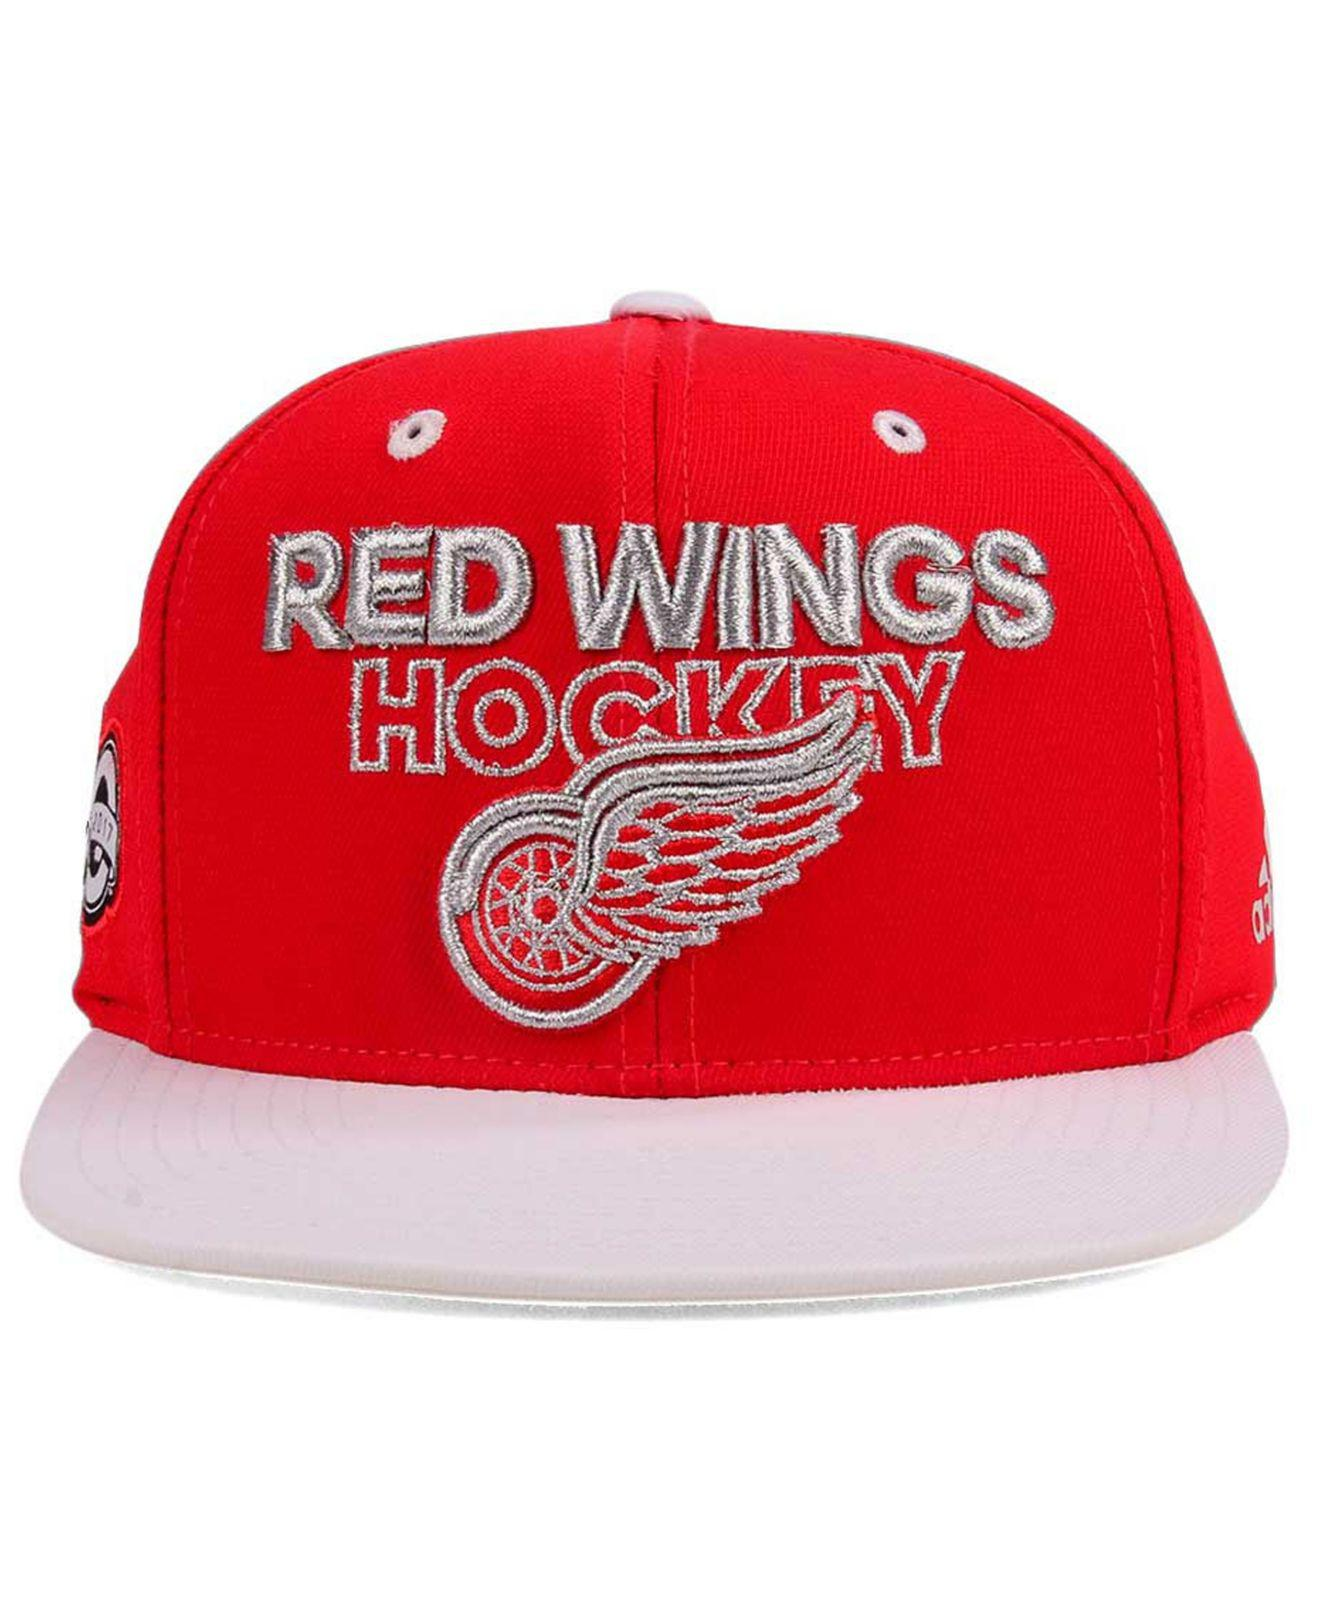 new styles 6af06 485fe sweden coupon code lyst adidas 100th celebration snapback cap in red for men  1831a 9bd85 17786